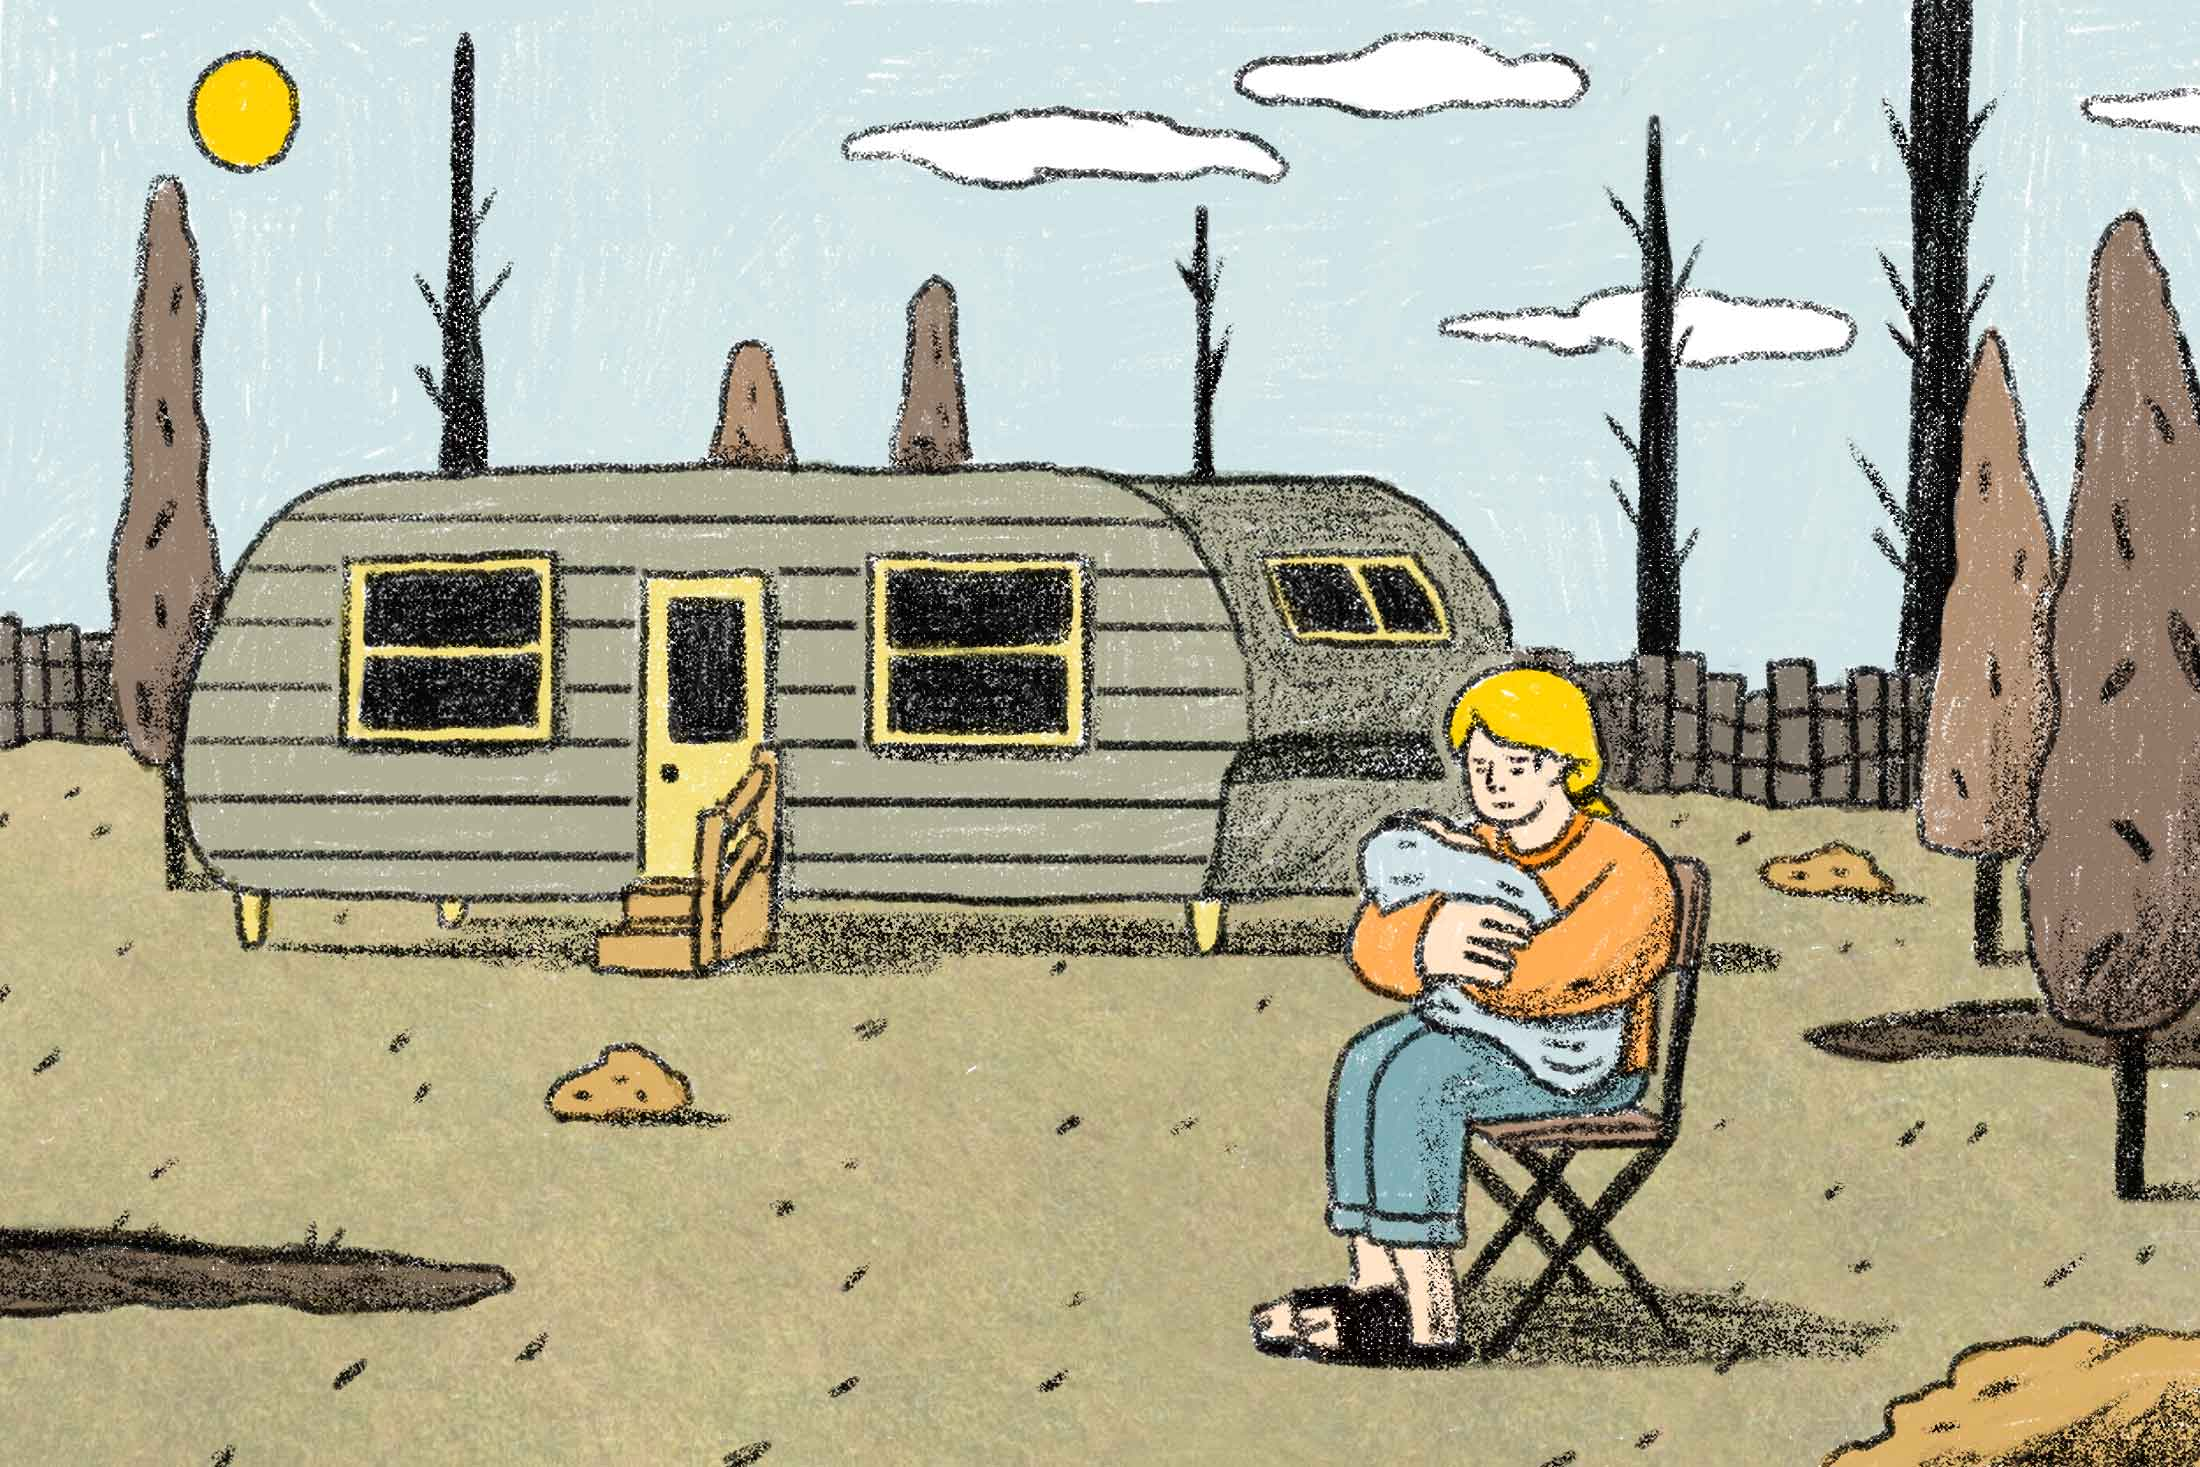 Illustration: A woman cradles a baby in her arms outside a trailer.